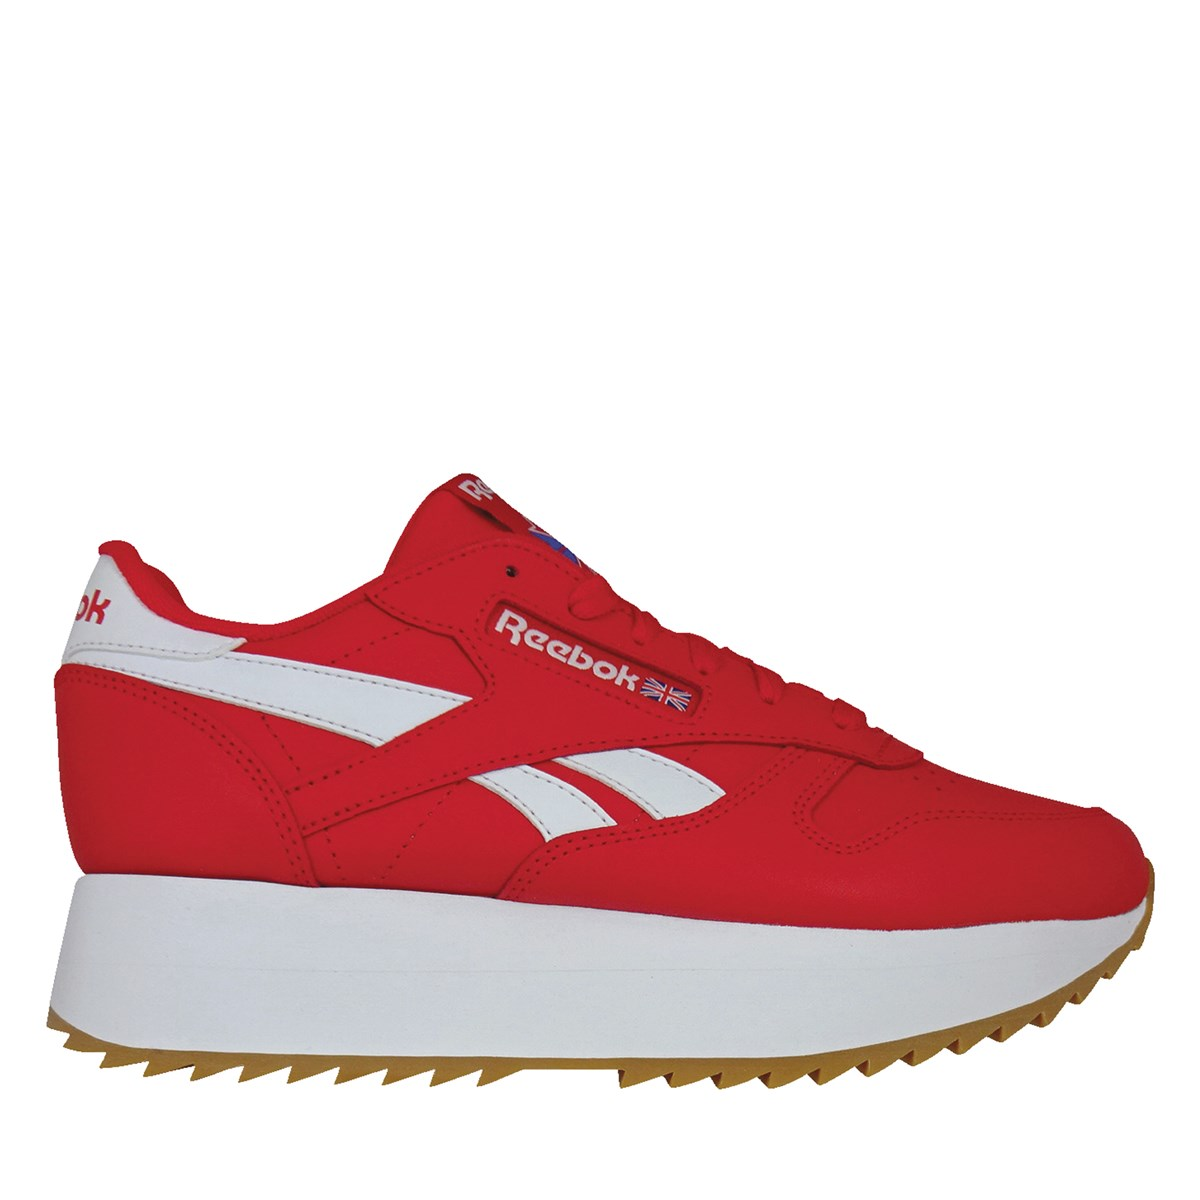 Women's Platform Sneakers in Red